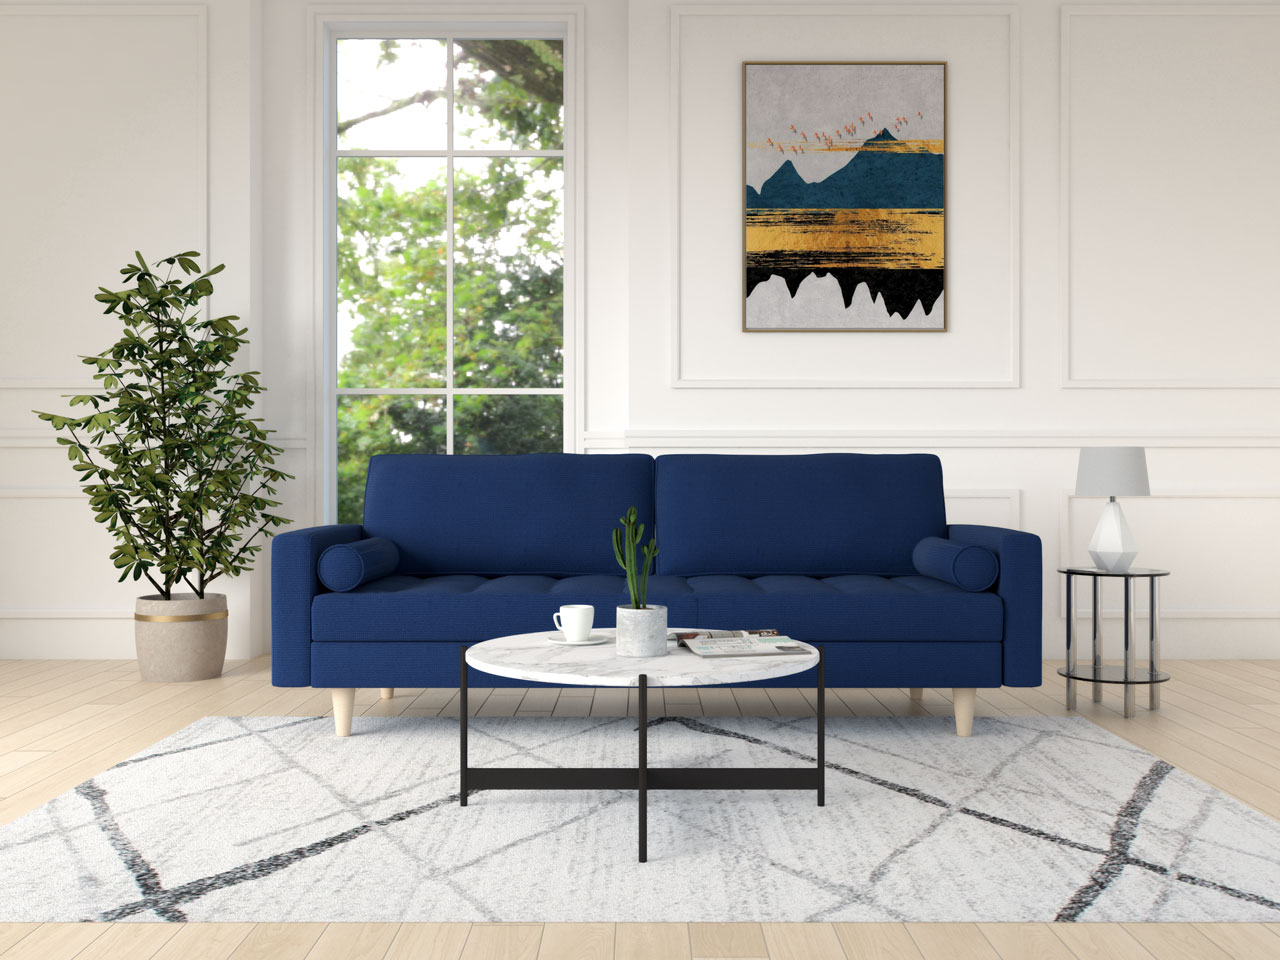 White and black round table with a blue couch